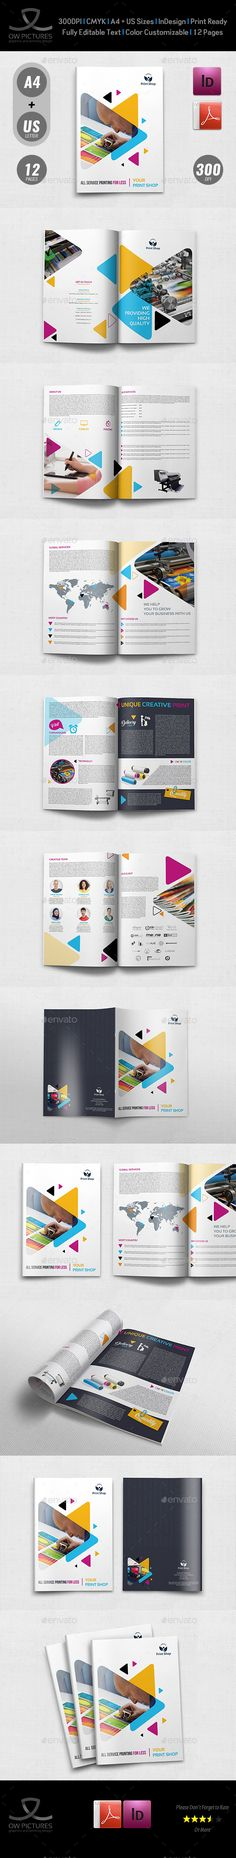 15 Travel Brochure Examples With Enticing Designs Travel Brochure